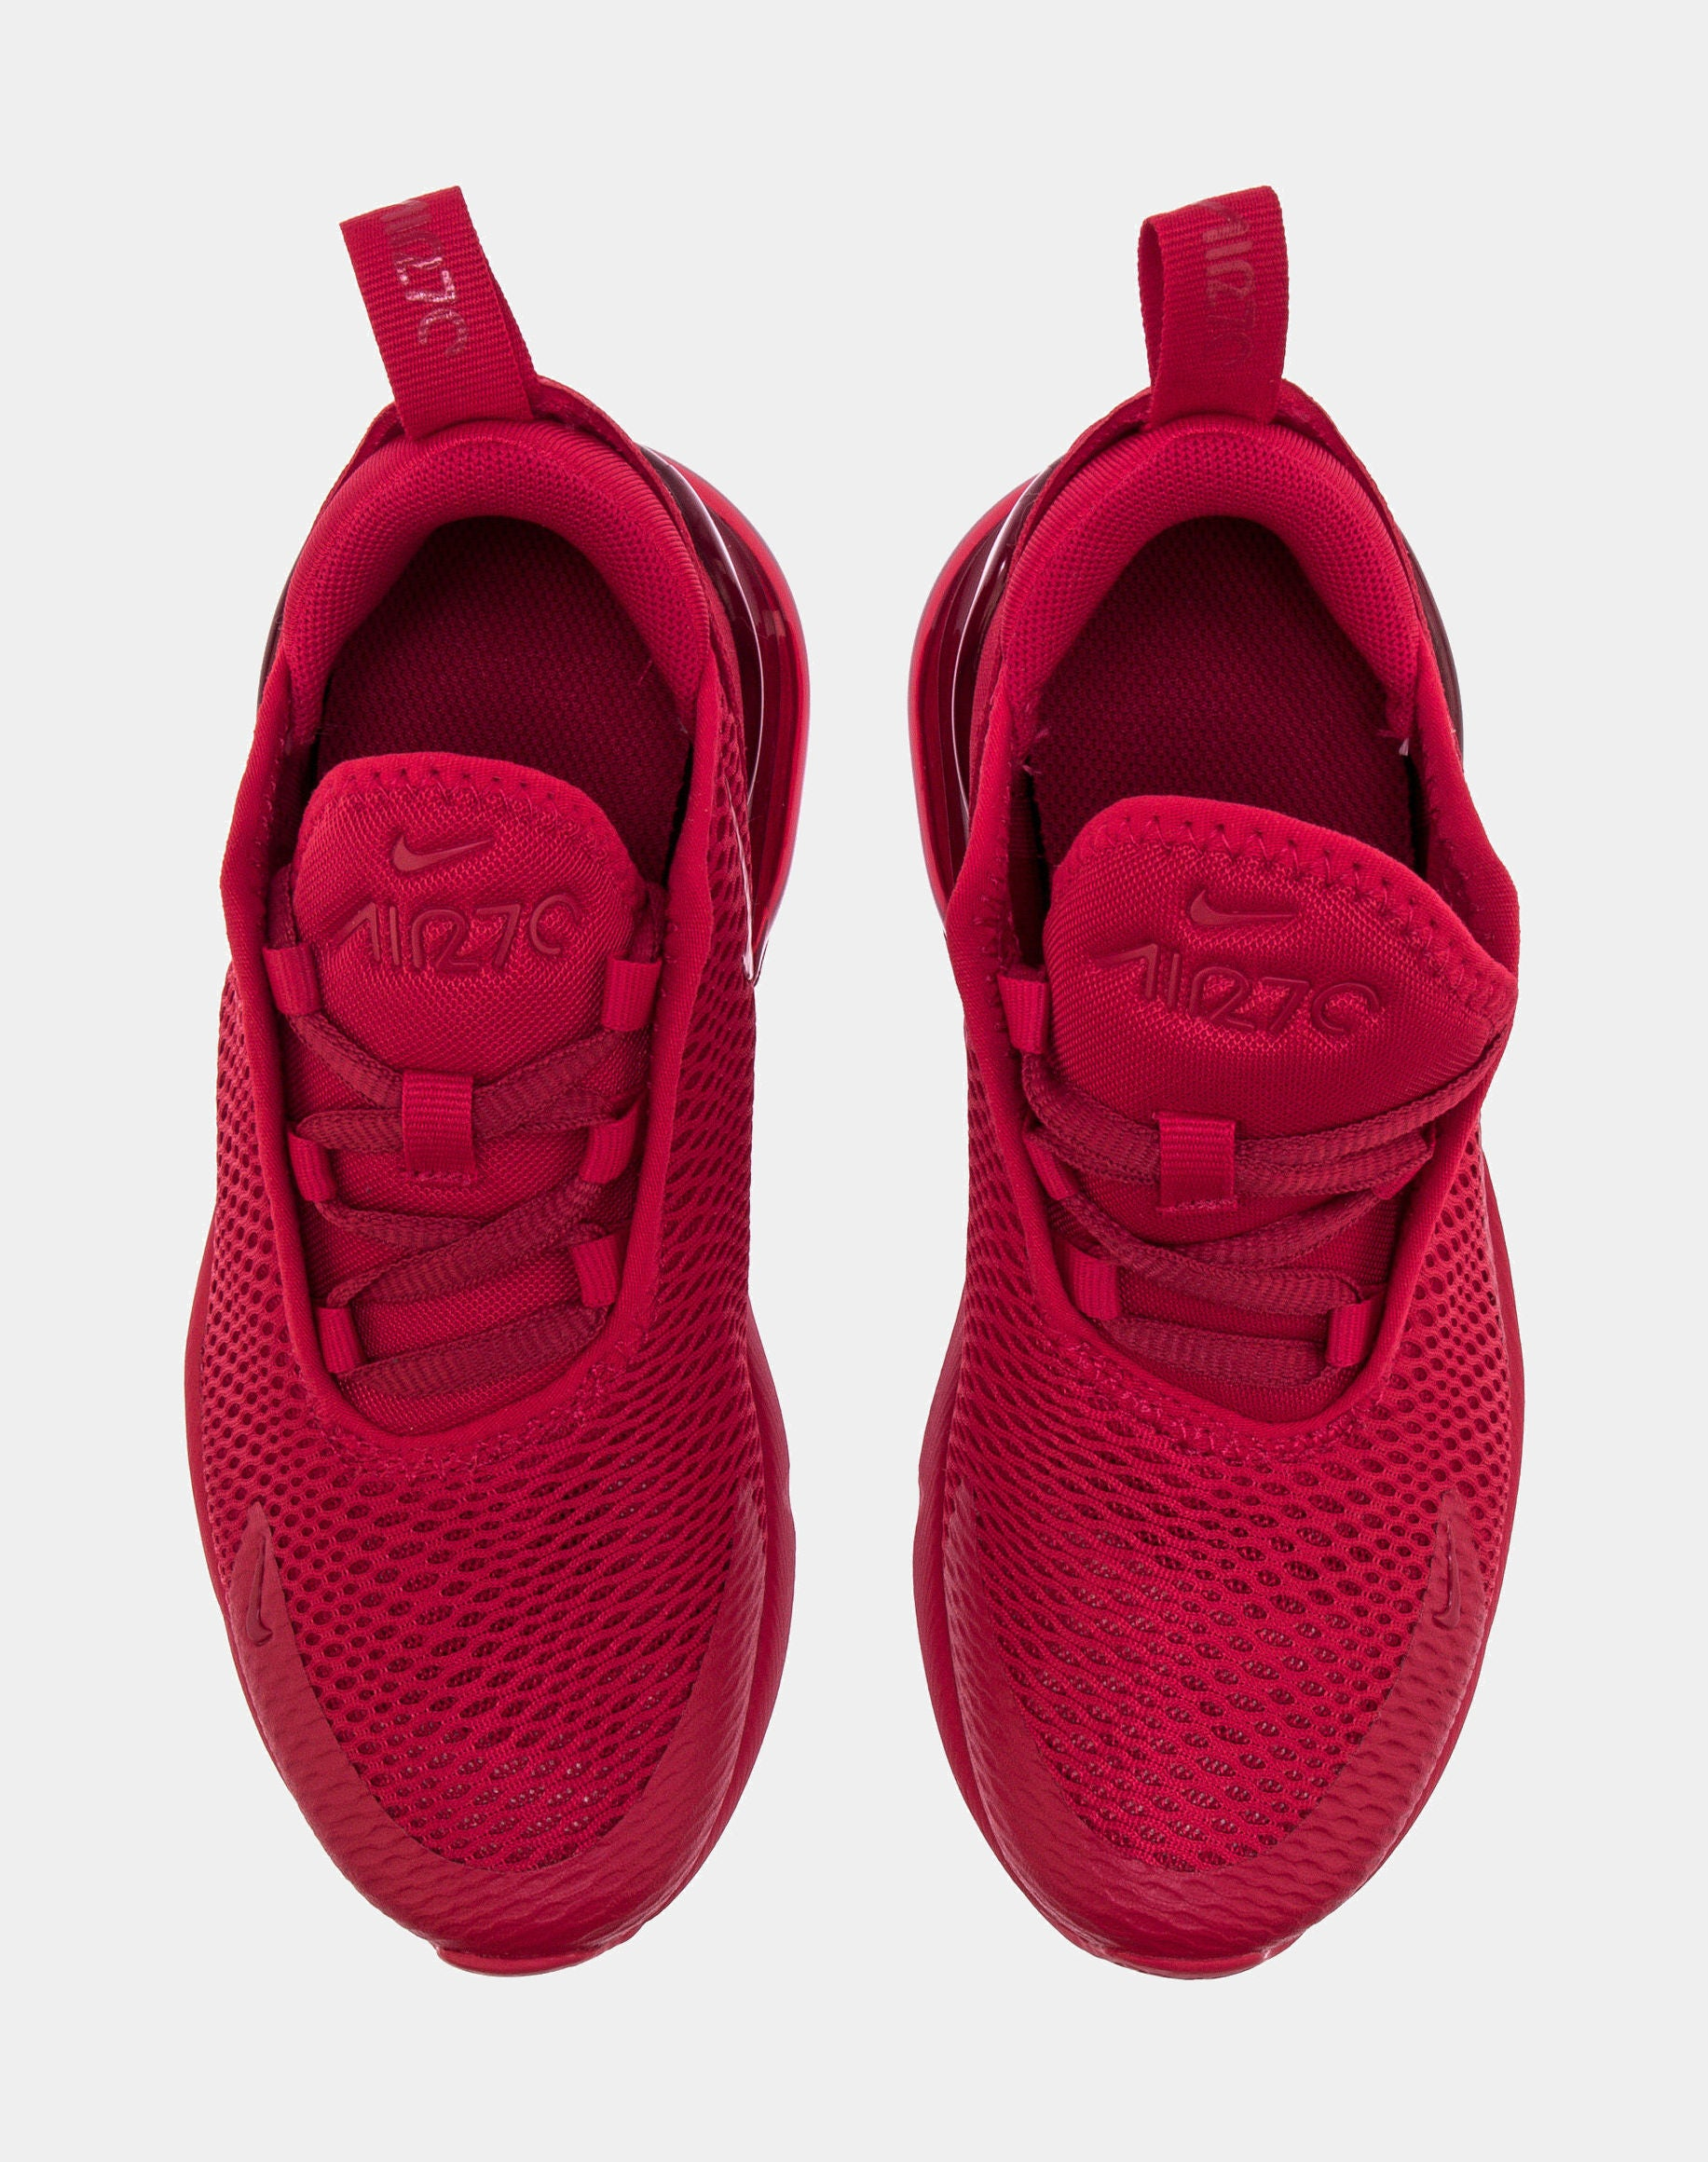 Air Max 270 Preschool Running Shoe (Red)